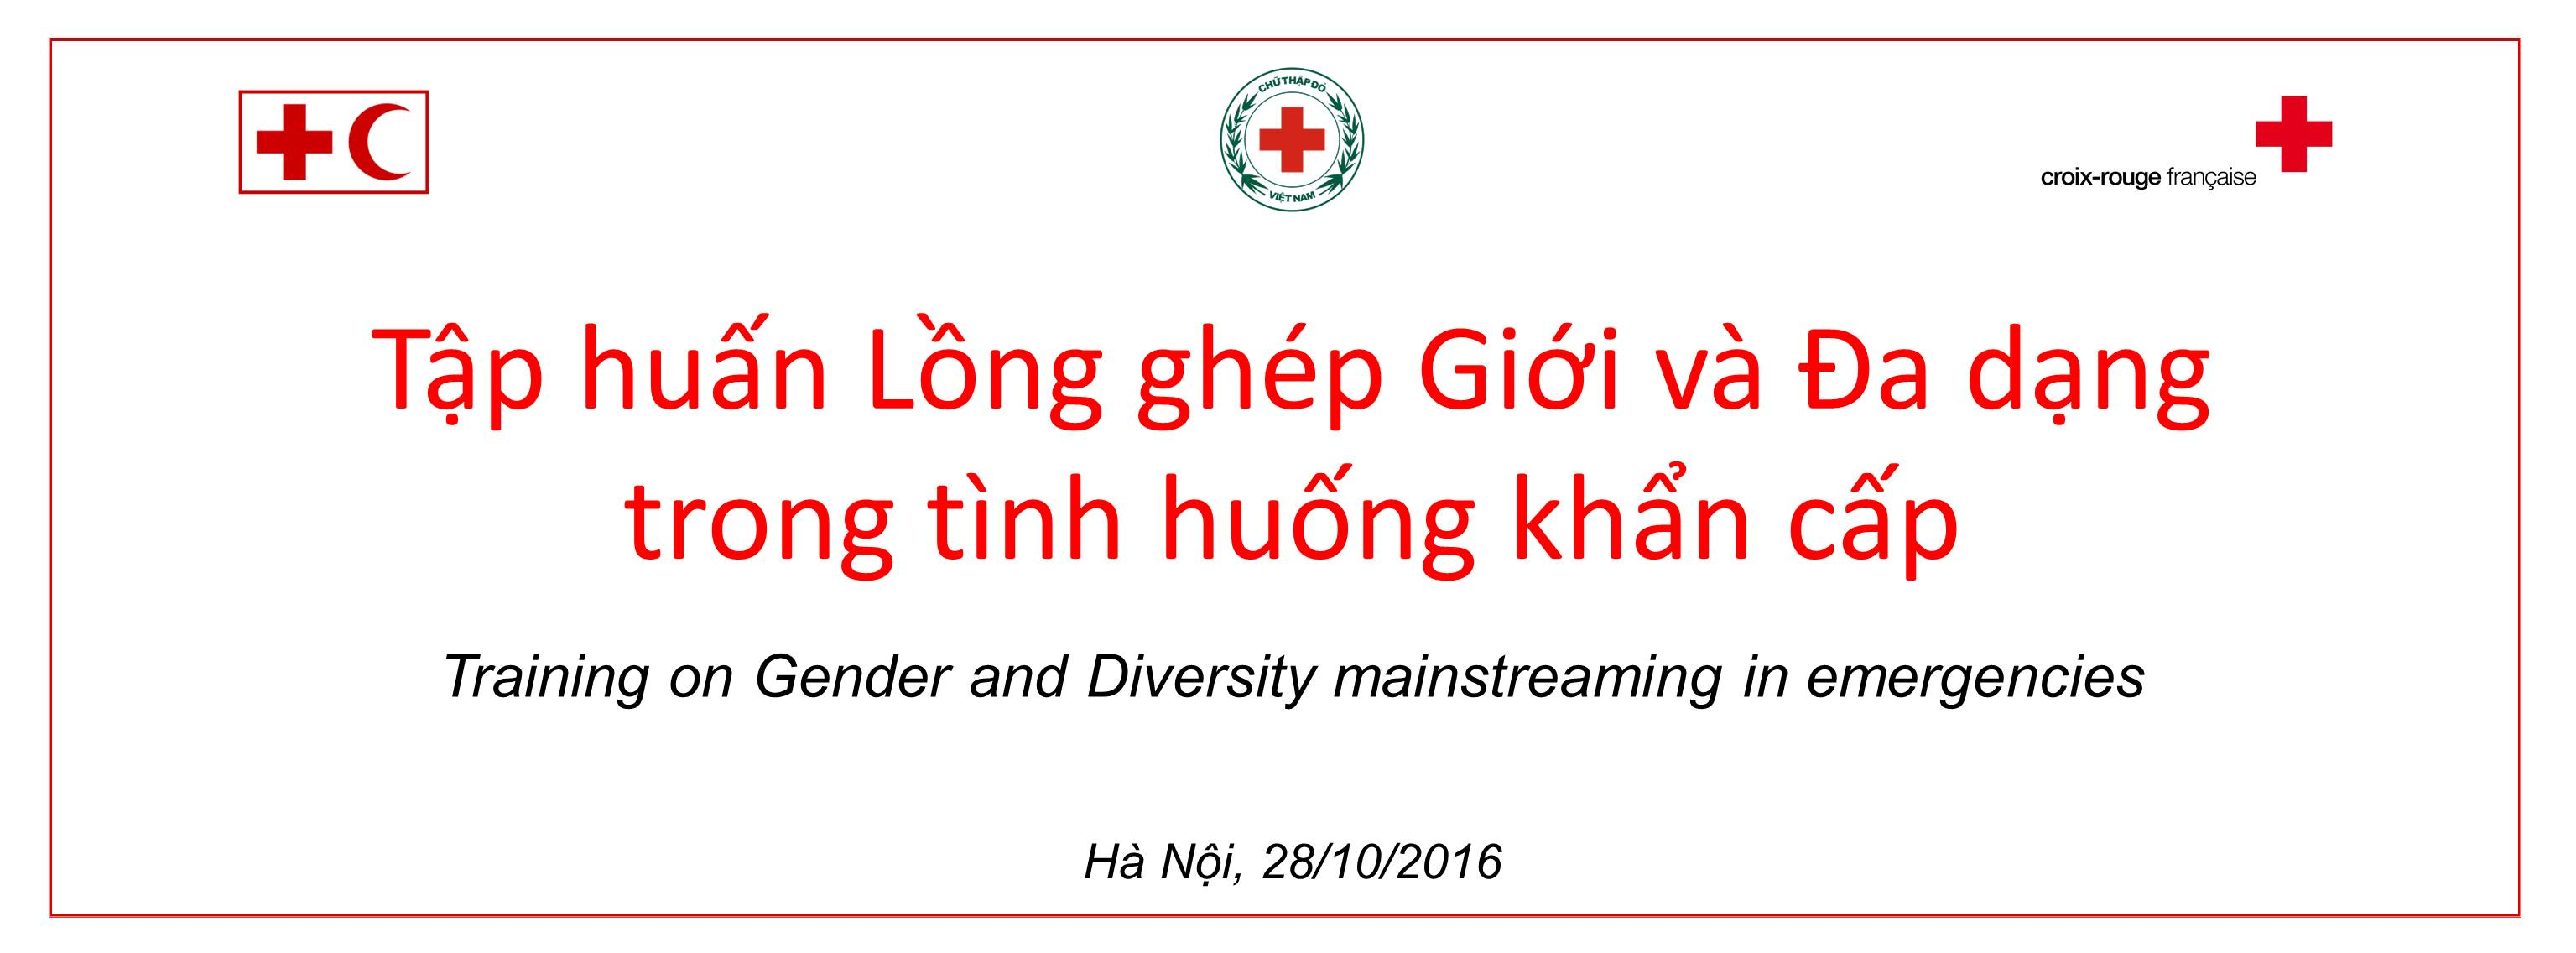 Gender and Diversity Mainstreaming in Emergencies 2016 backdrop